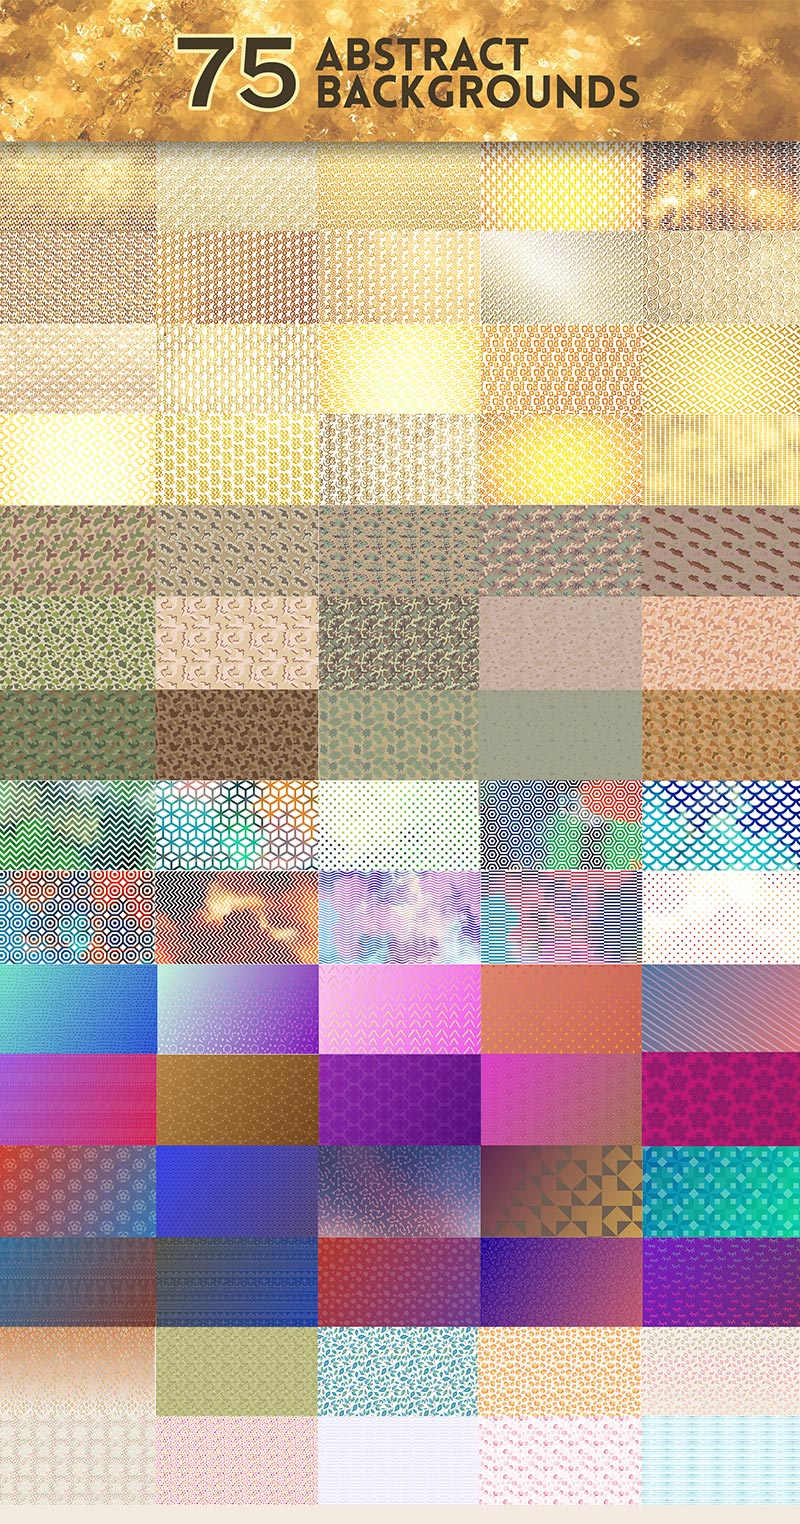 75 Abstract Background Design Previews